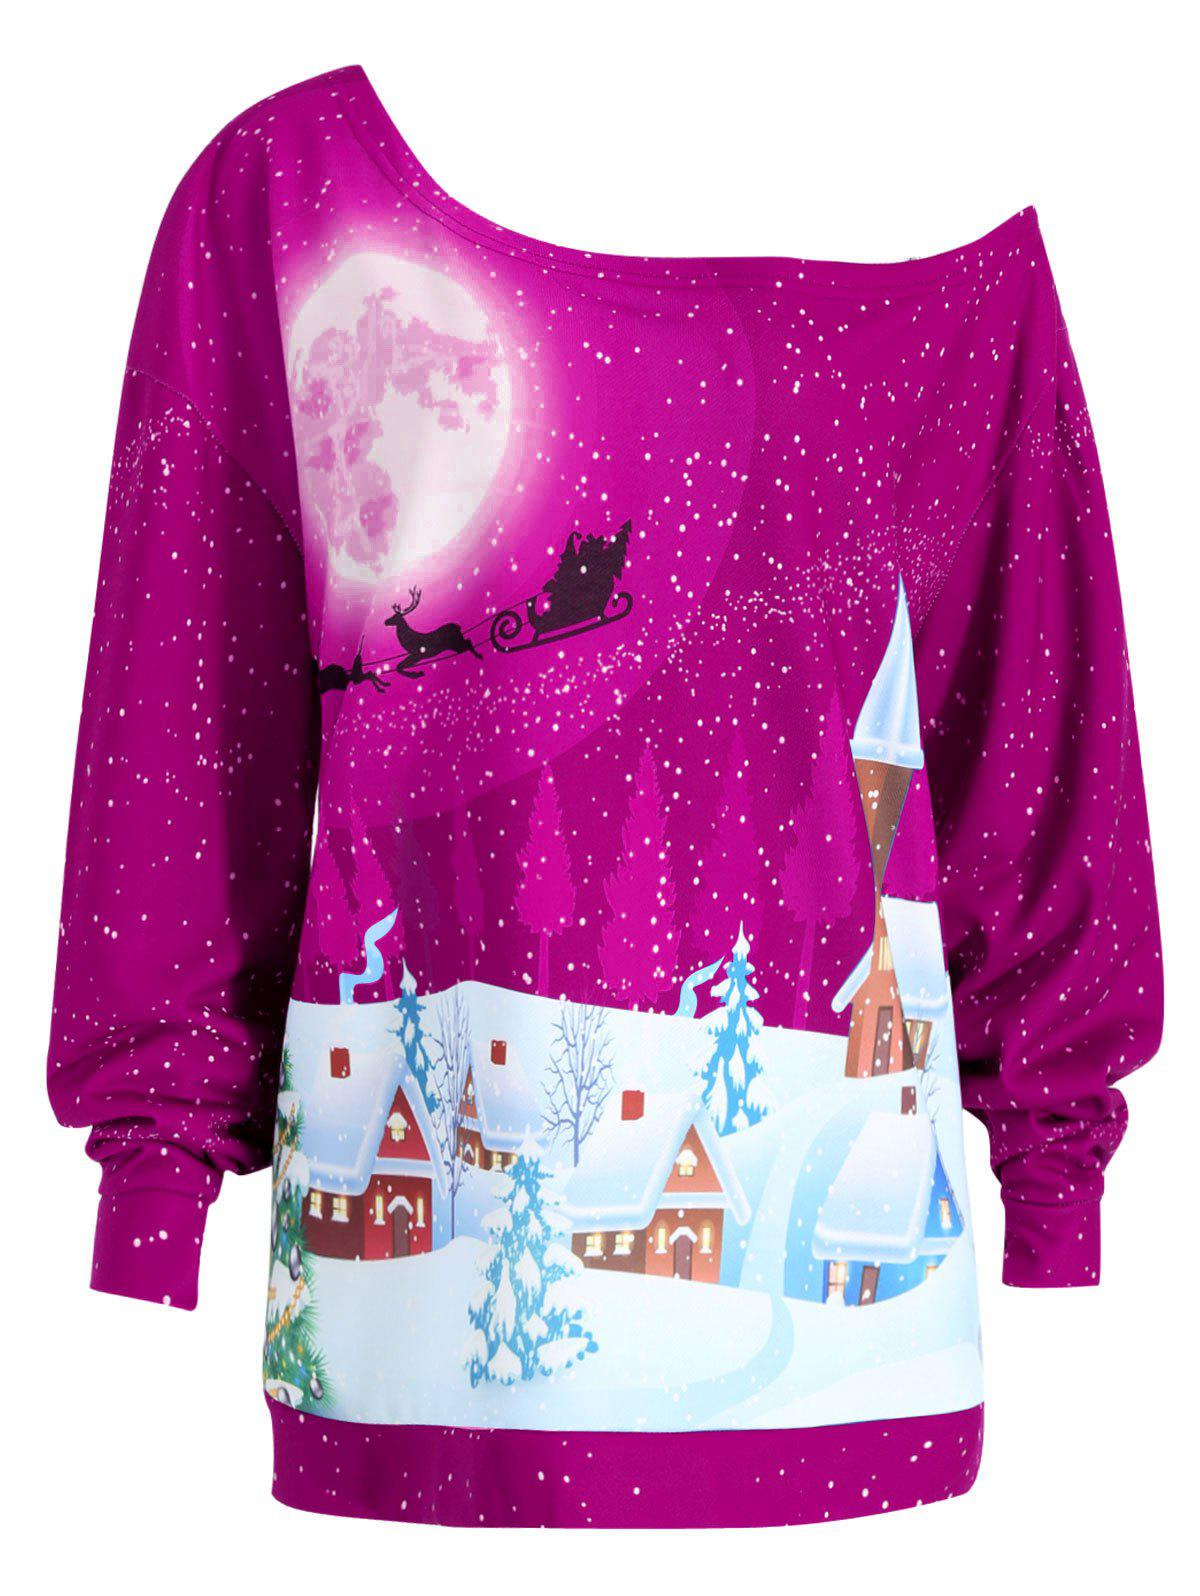 Christmas Evening Printed Plus Size Skew Neck SweatshirtWOMEN<br><br>Size: 3XL; Color: ROSE MADDER; Material: Cotton Blend,Polyester; Shirt Length: Regular; Sleeve Length: Full; Style: Fashion; Pattern Style: Print; Season: Fall,Winter; Weight: 0.4100kg; Package Contents: 1 x Sweatshirt;